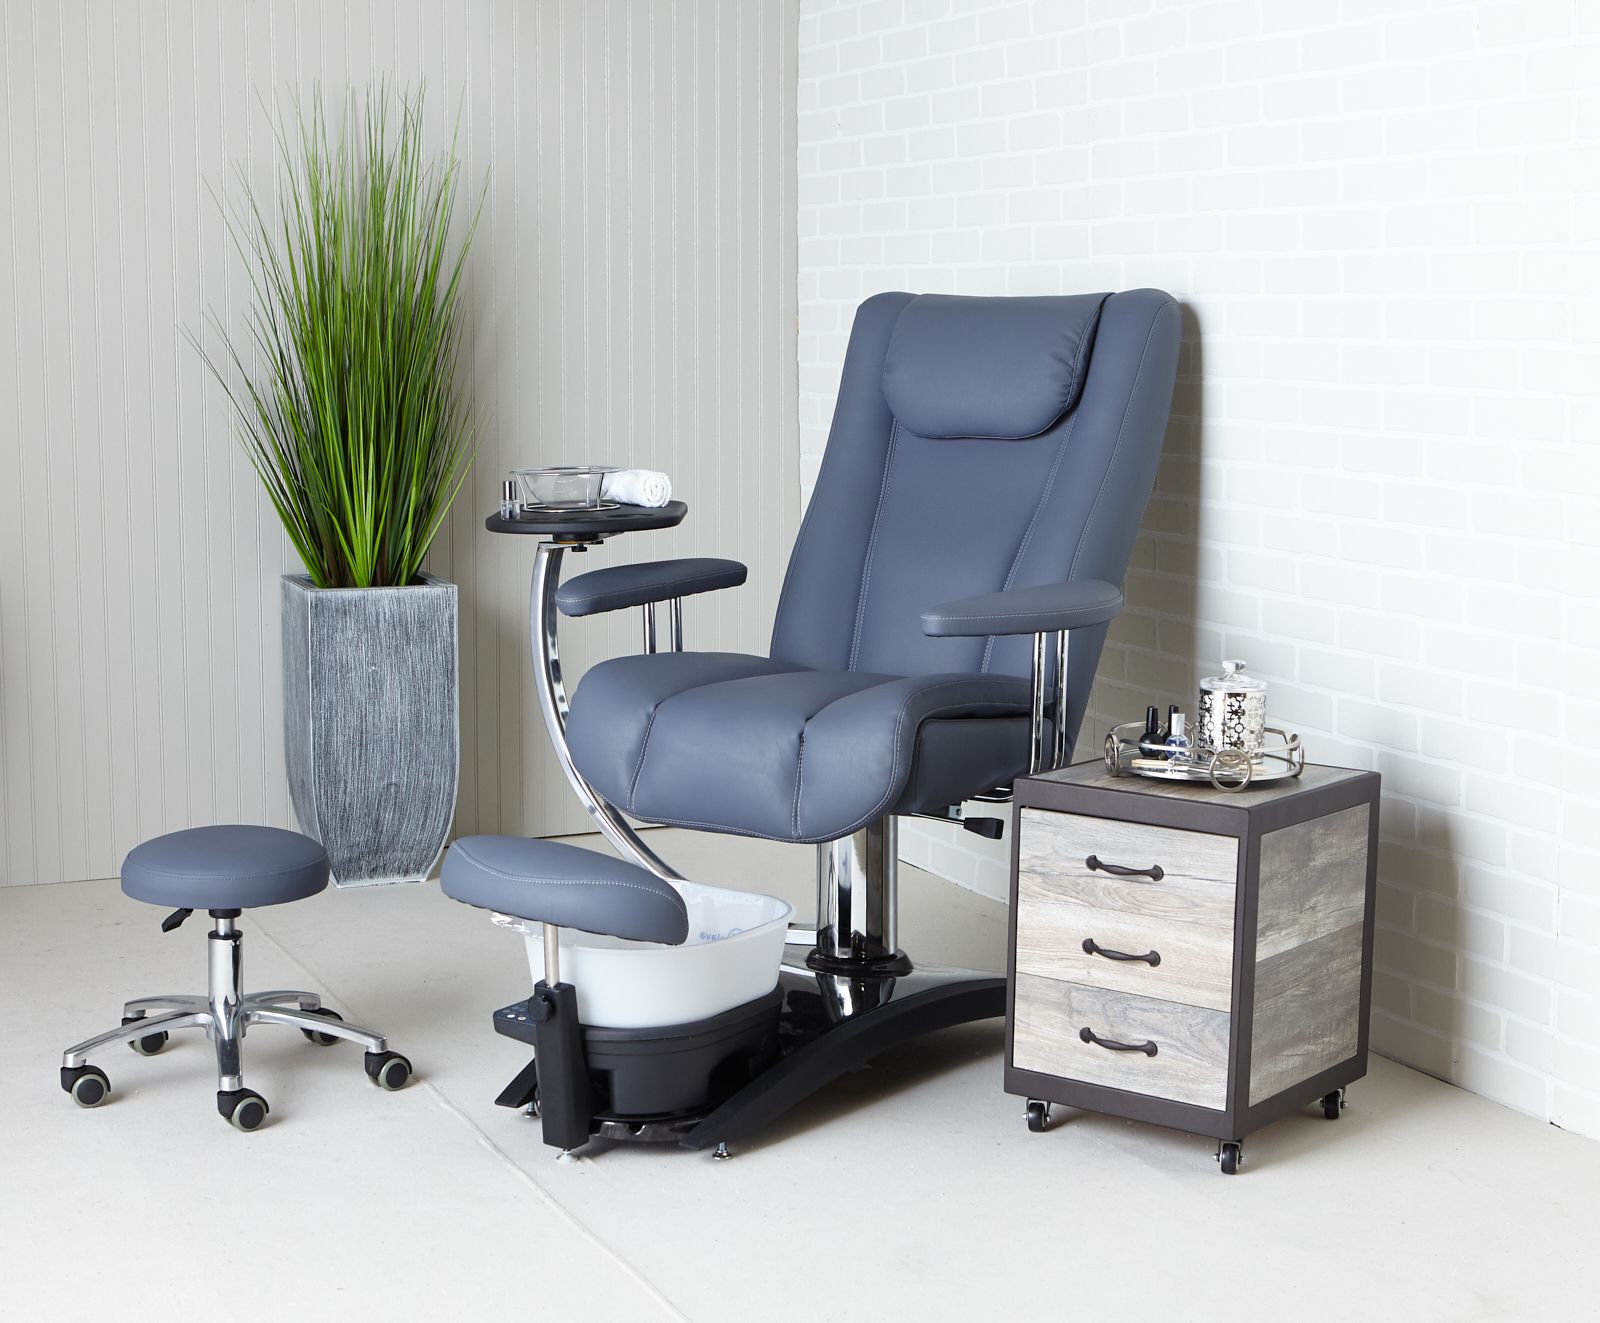 Pedicure Chair Embrace NoPlumbing Beauty salon